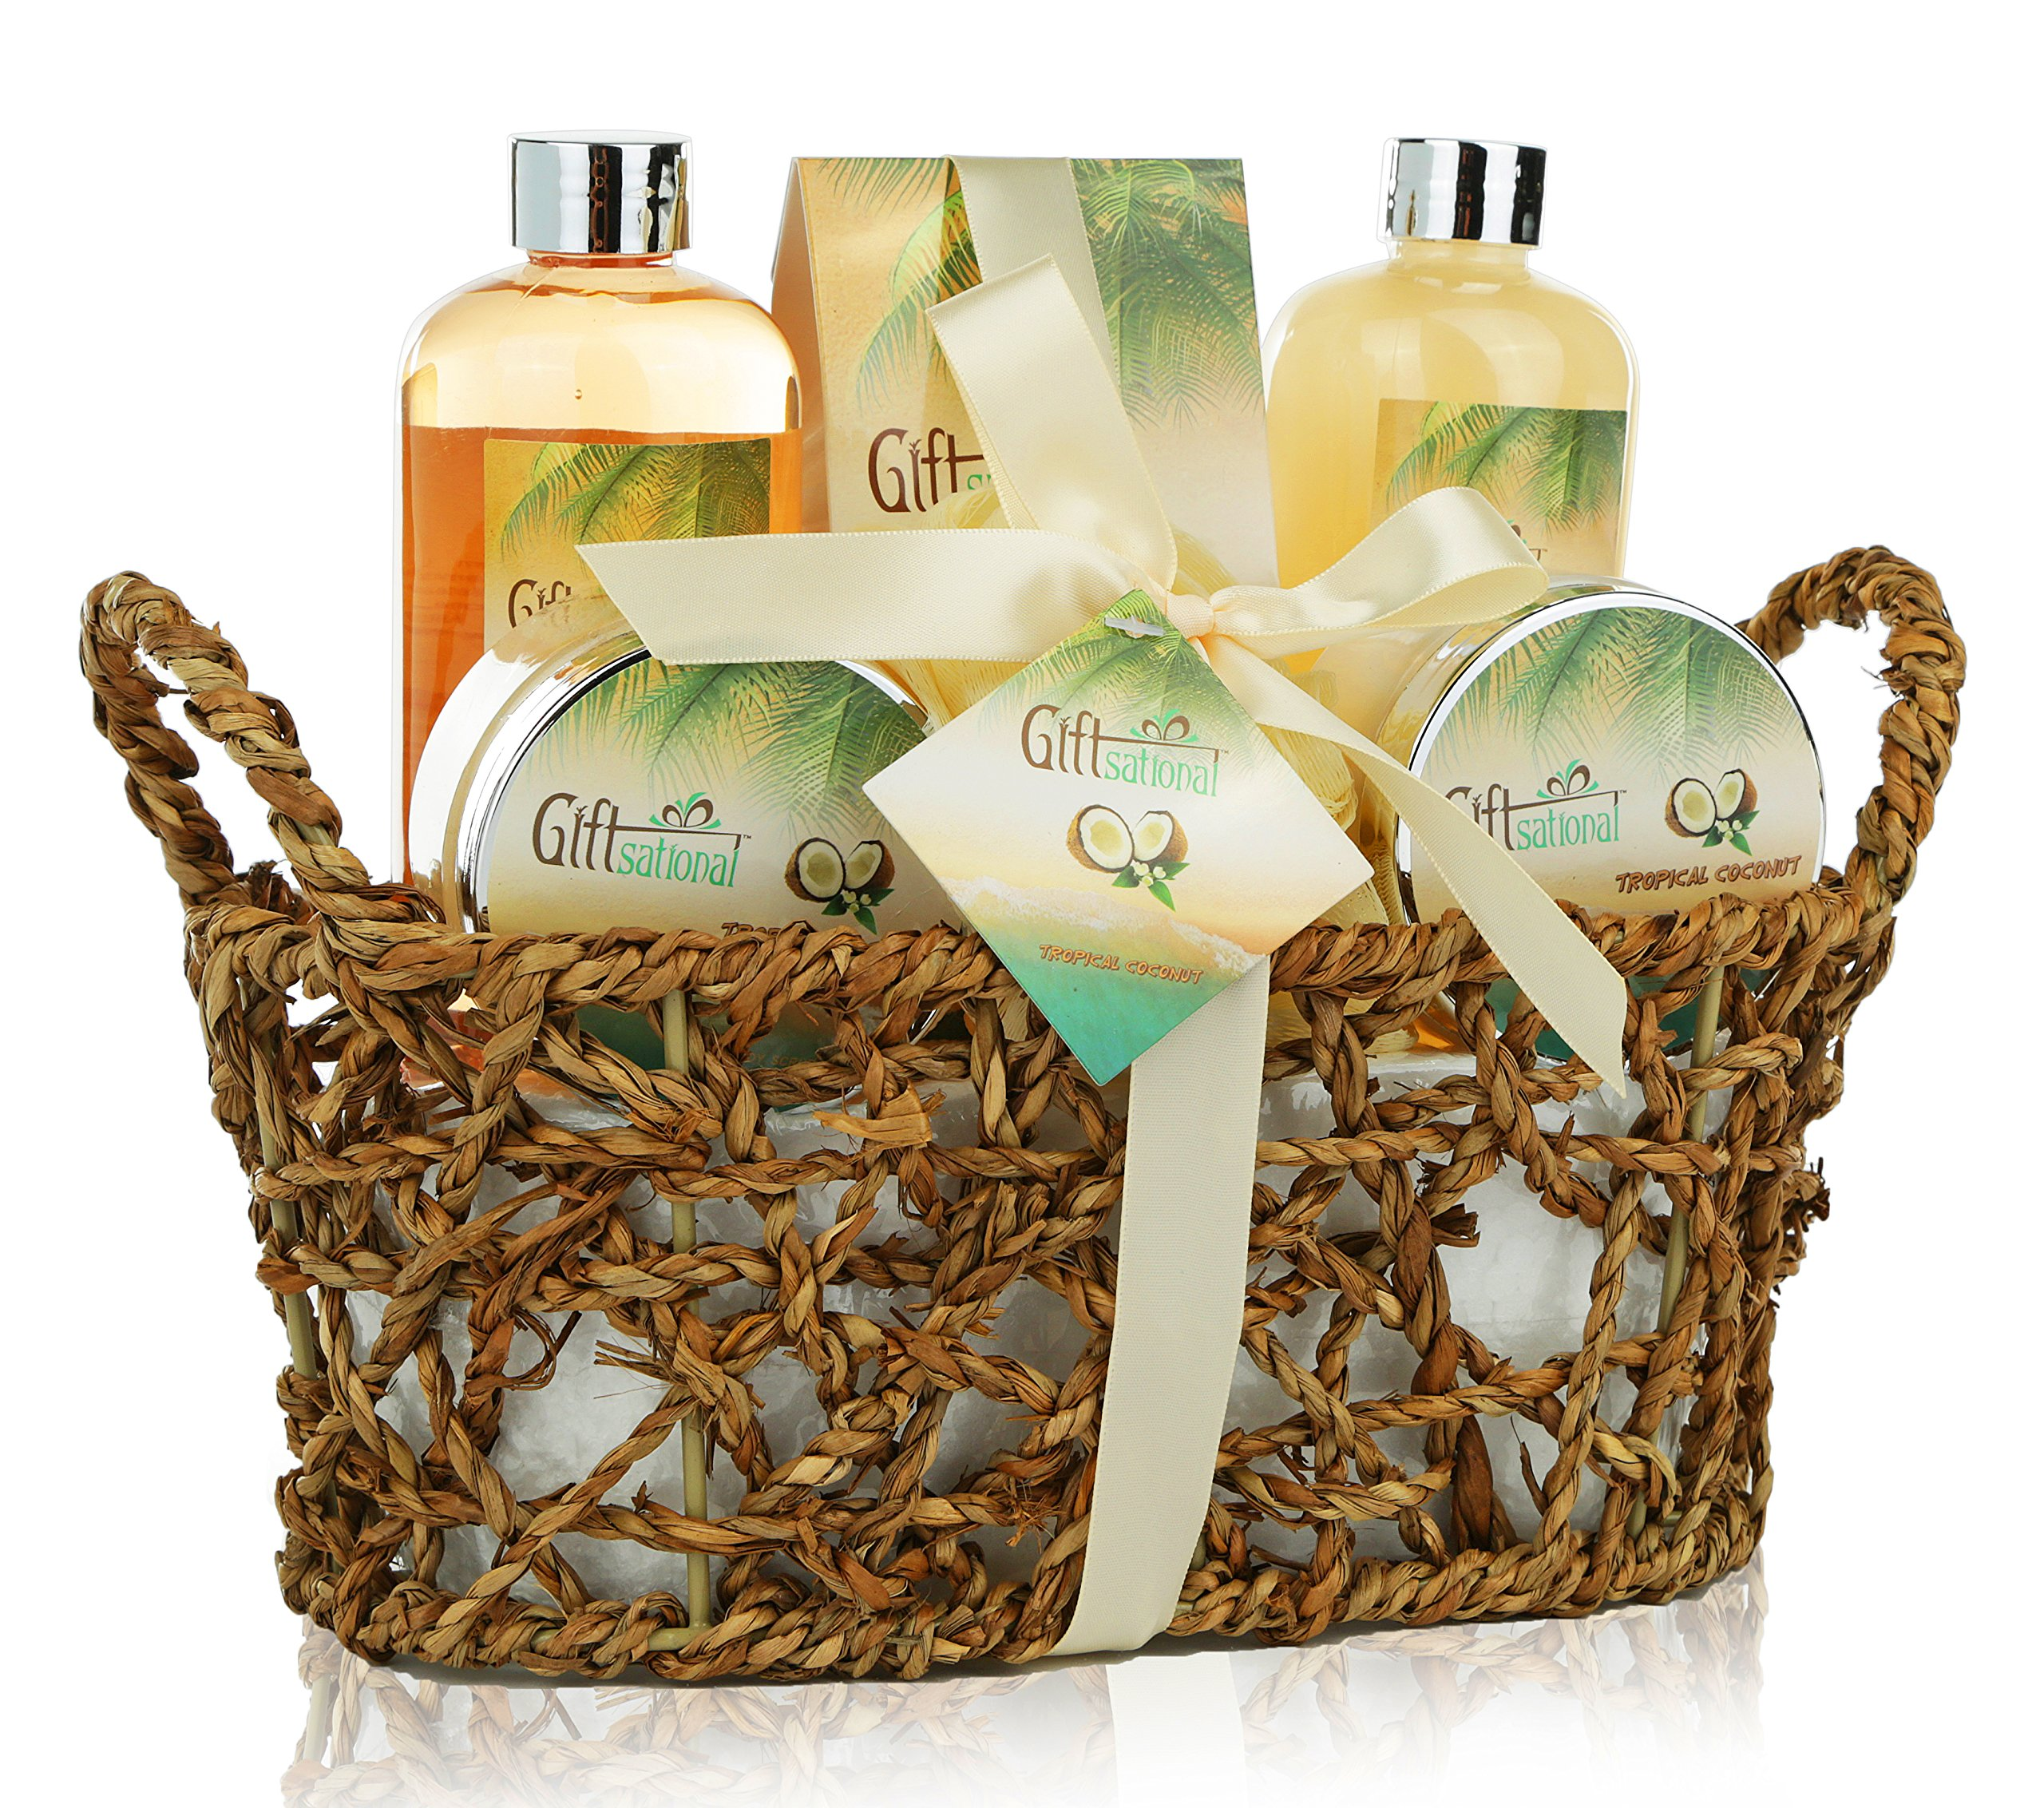 Spa Gift Basket with Rejuvenating Tropical Coconut Fragrance in Cute Woven Basket - Includes Shower Gel, Bubble Bath, Body Lotion and More! Perfect Anniversary, Wedding or Birthday Gift Set for Women